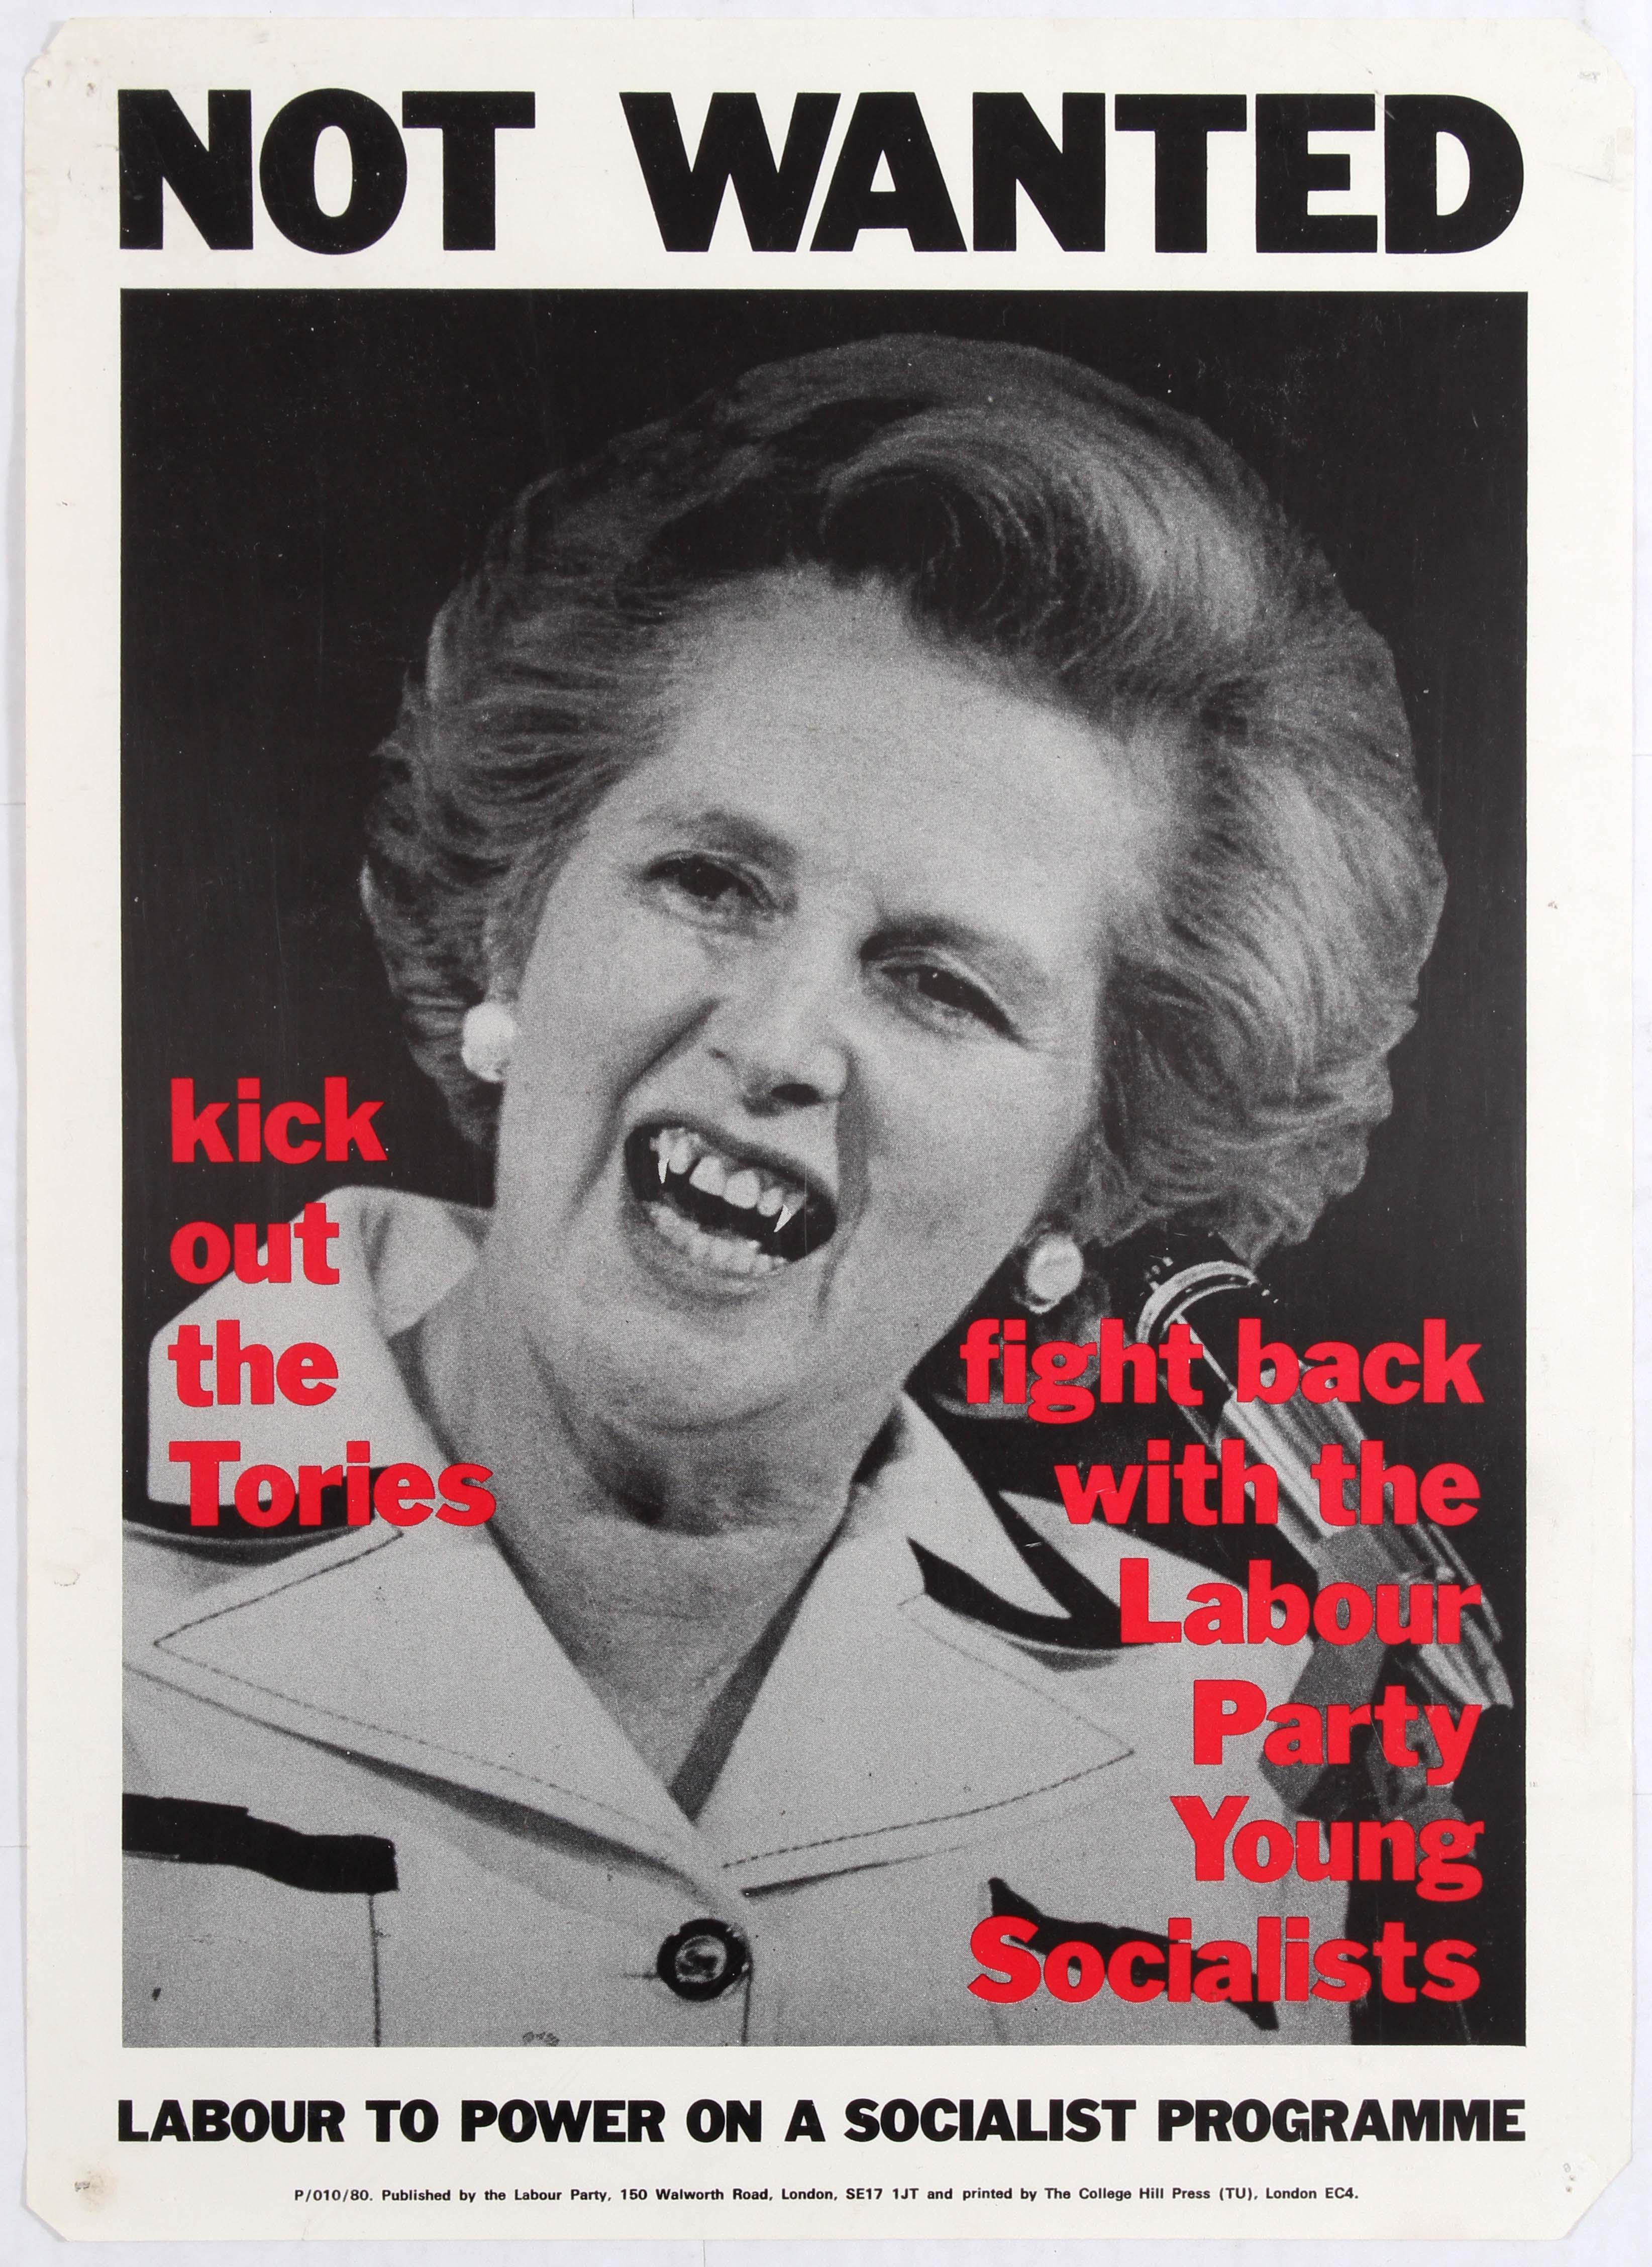 Propaganda poster - Not Wanted - Kick out the Tories - Fight